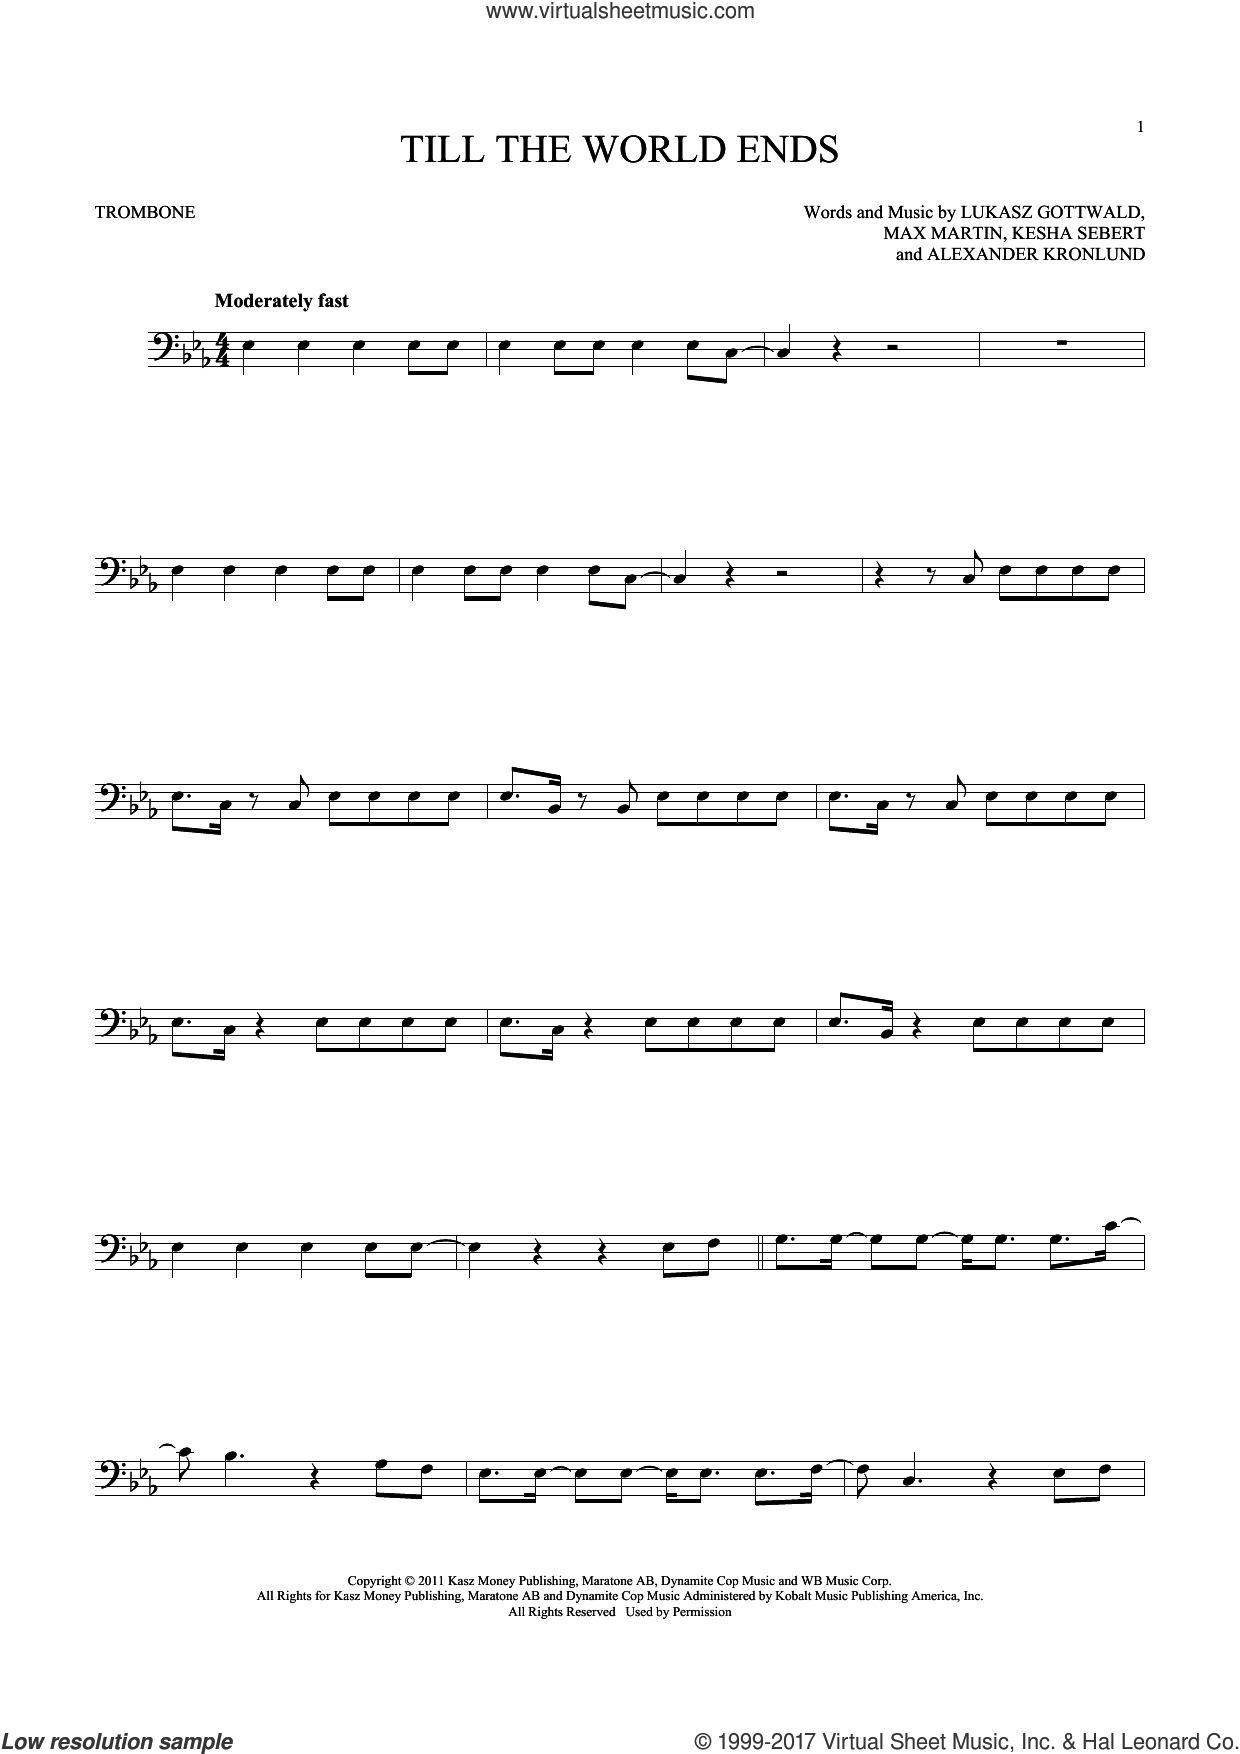 Till The World Ends sheet music for trombone solo by Britney Spears, Alexander Kronlund, Kesha Sebert, Lukasz Gottwald and Max Martin, intermediate skill level